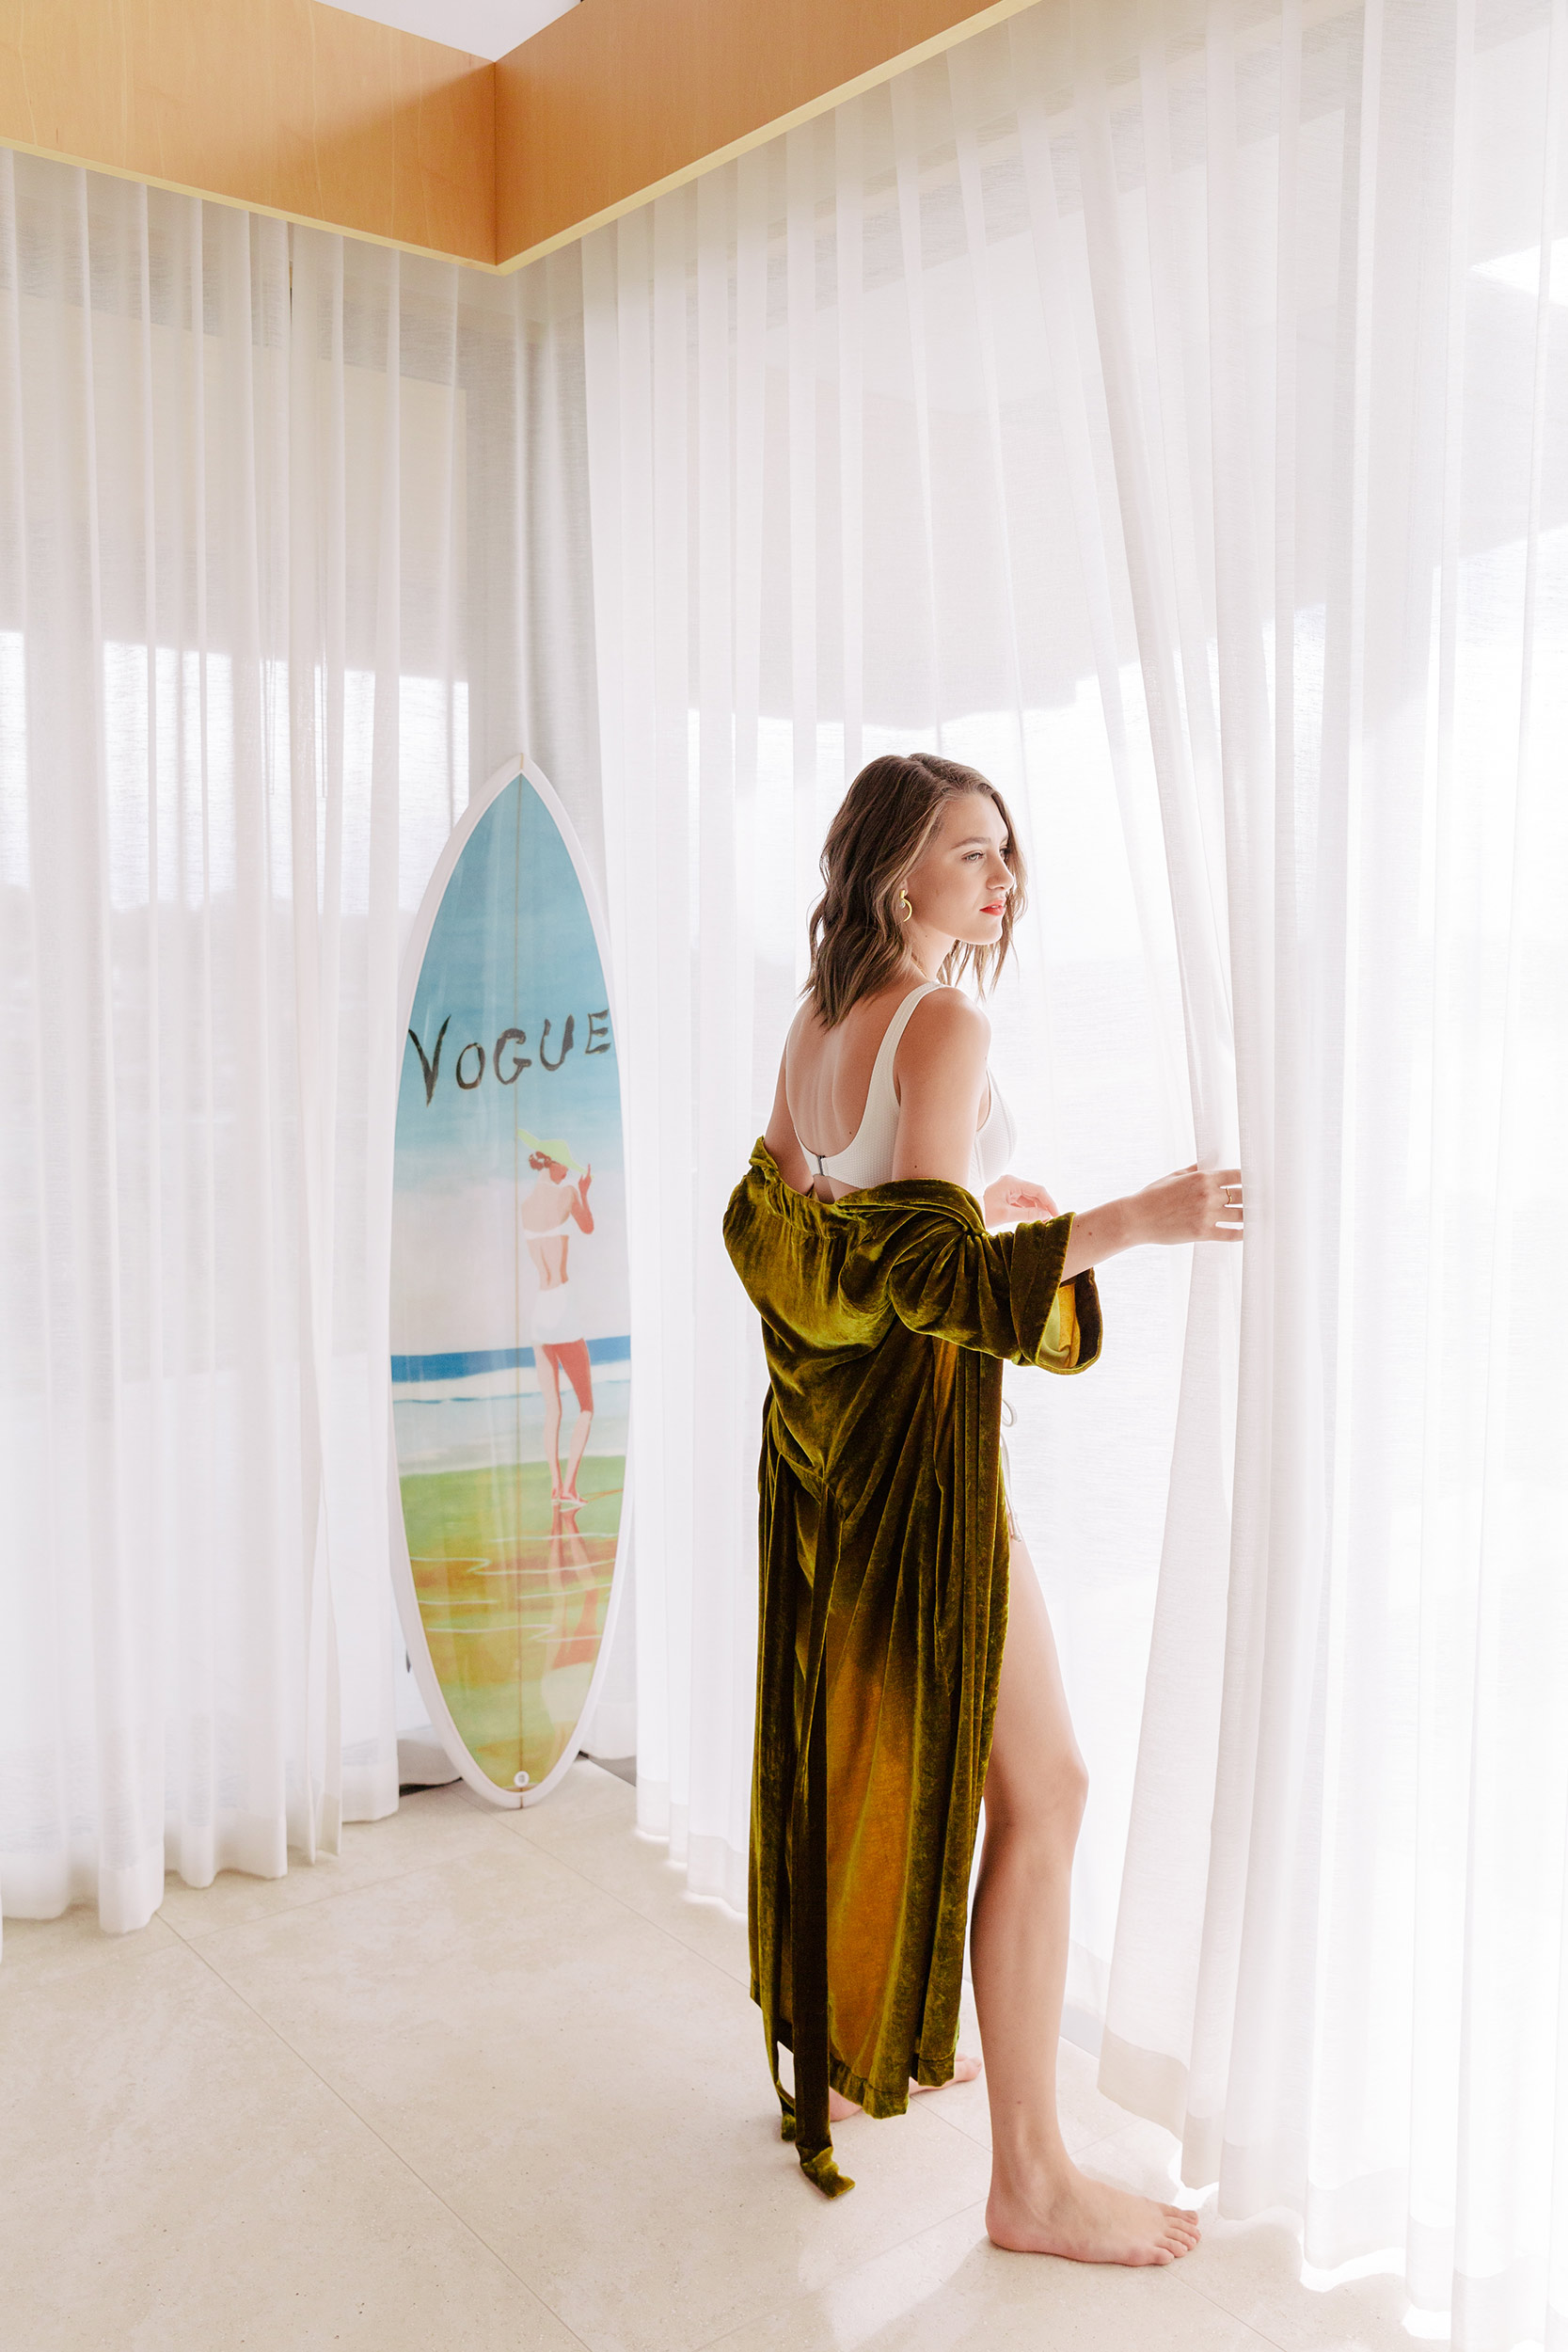 nusa-indah-surfboards-vogue-collection-eduardo-benito-6.jpg